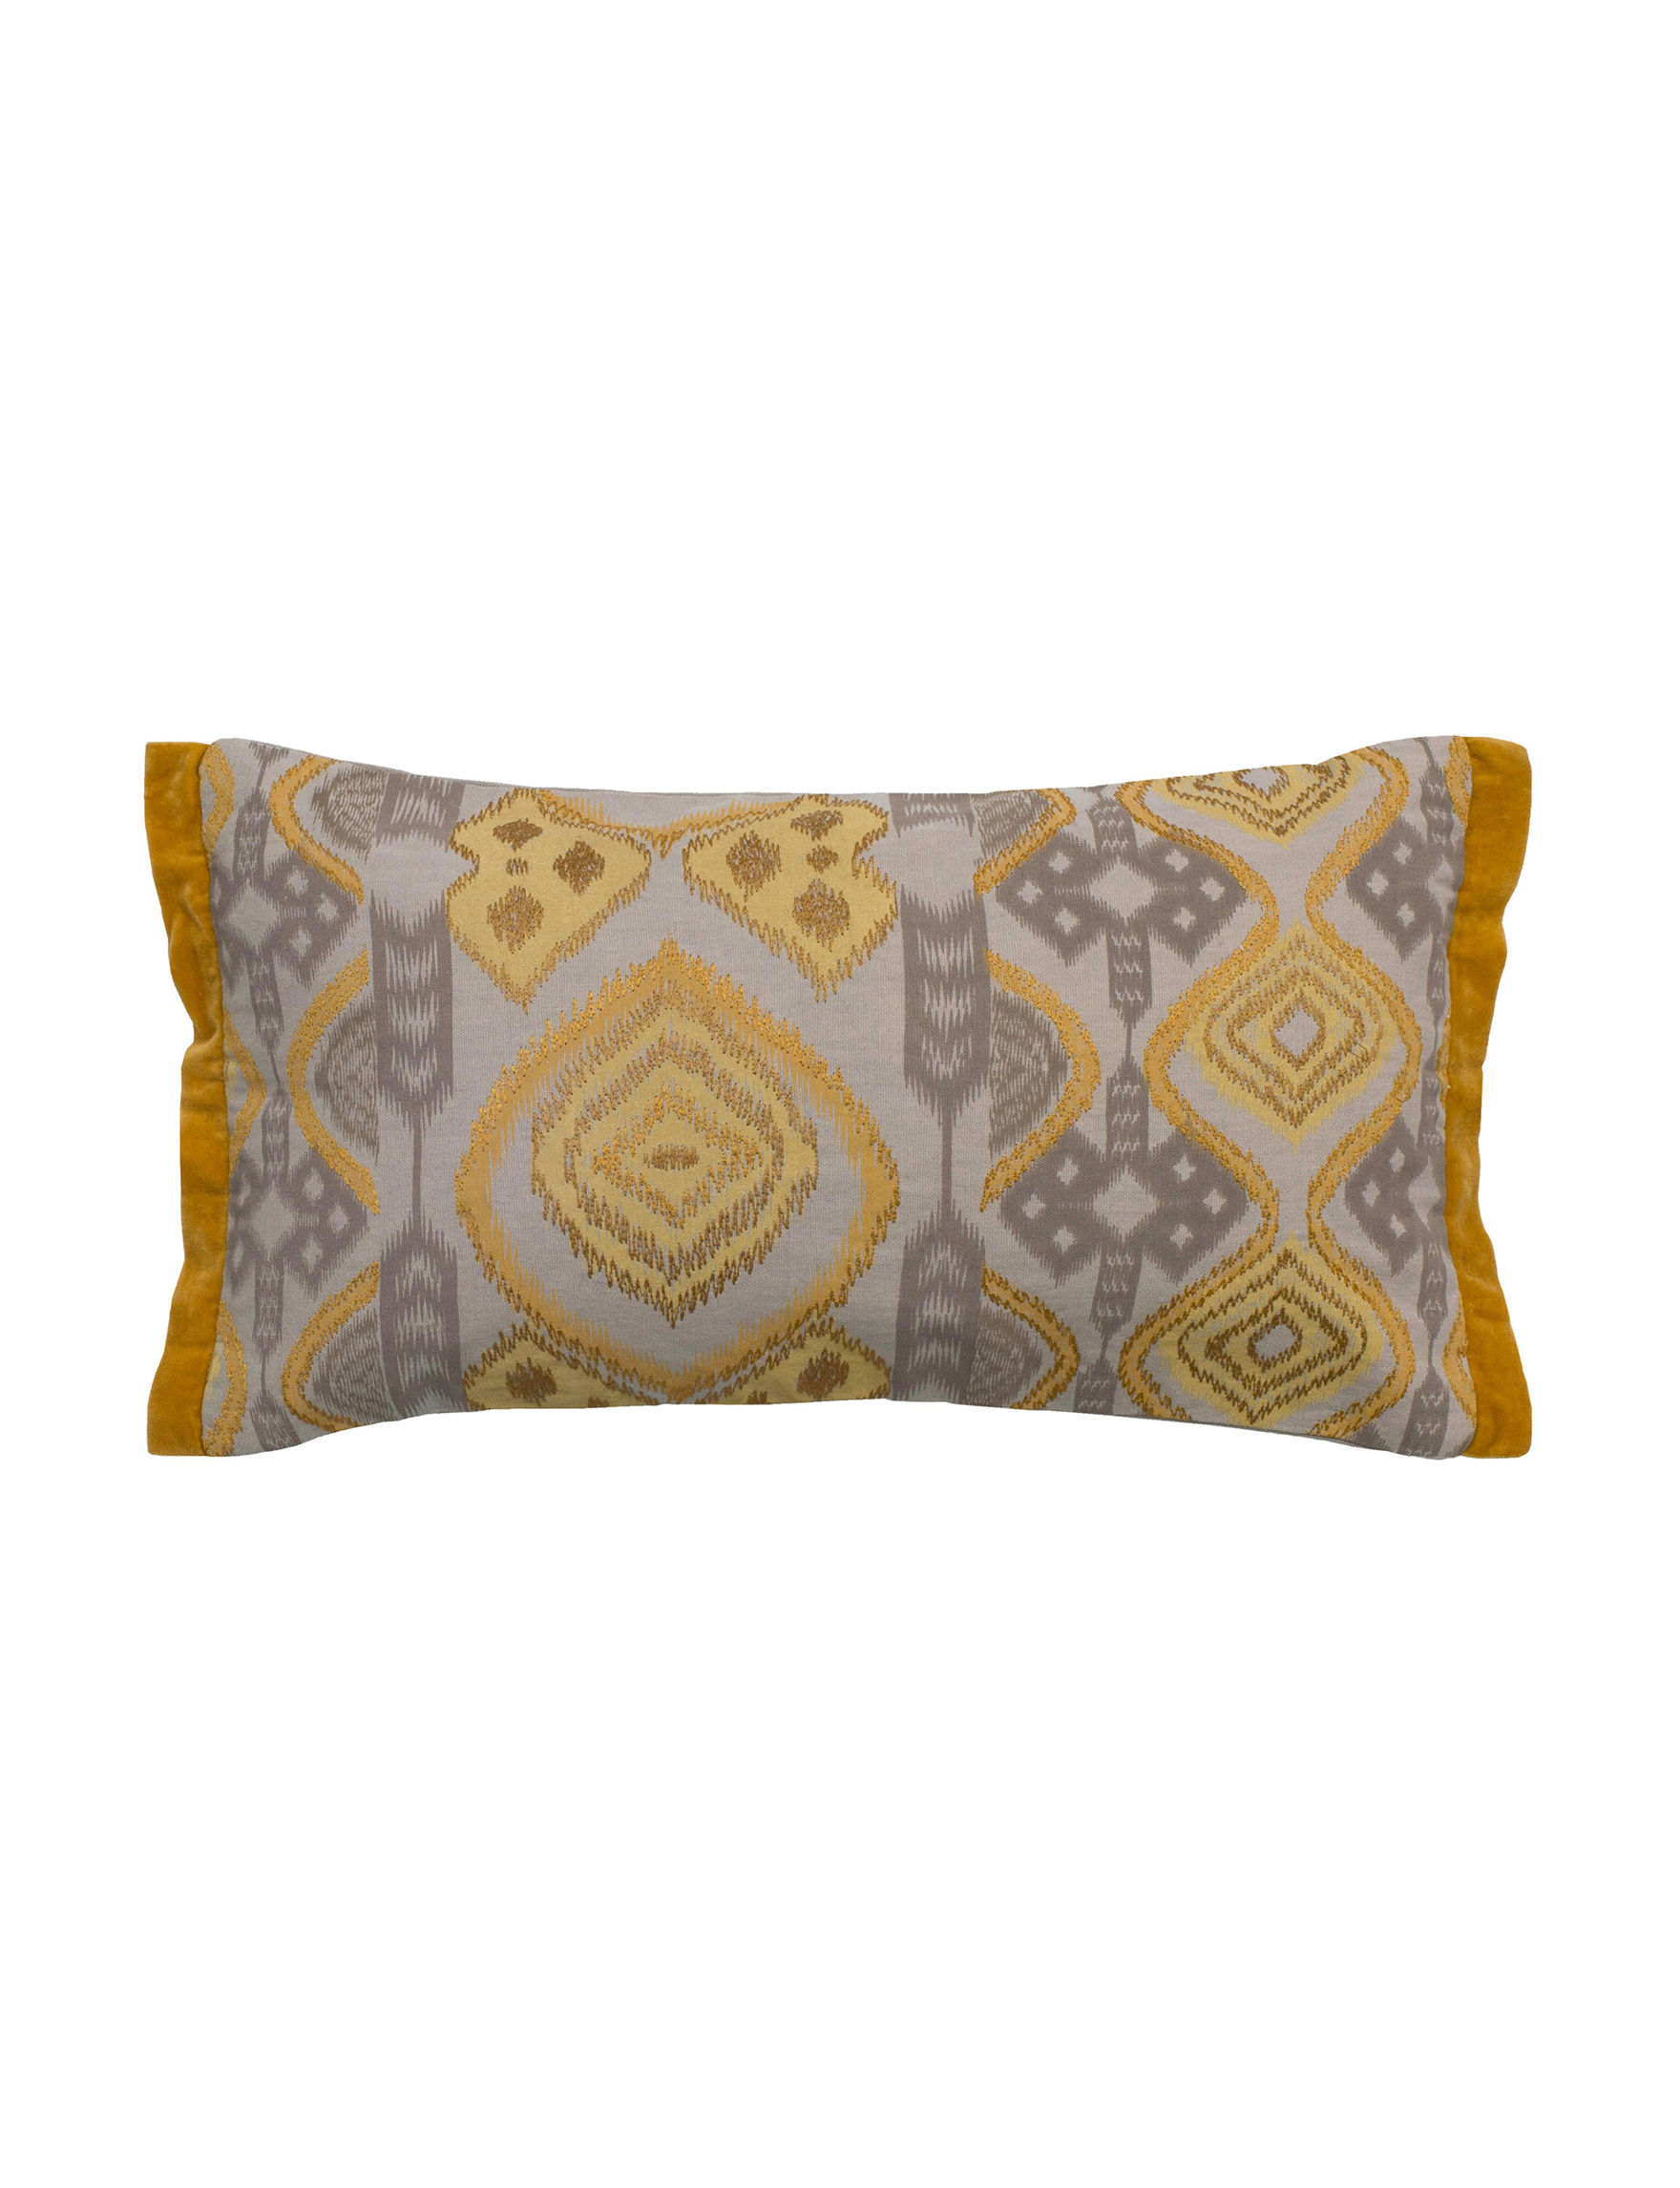 Rizzy Home Beige/Khaki Decorative Pillows